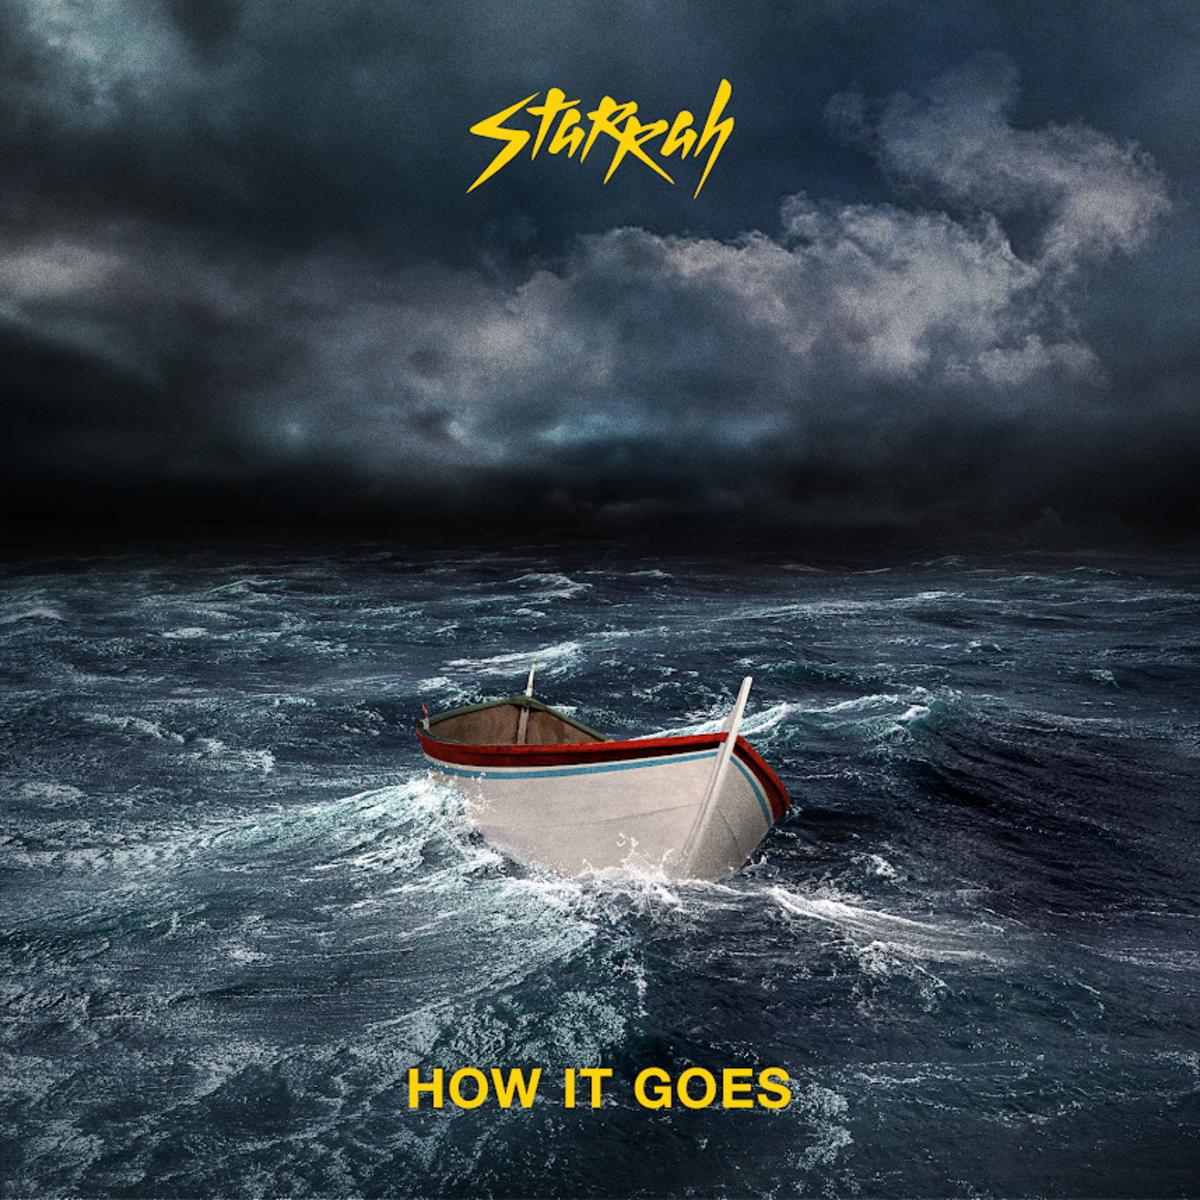 Starrah – How It Goes